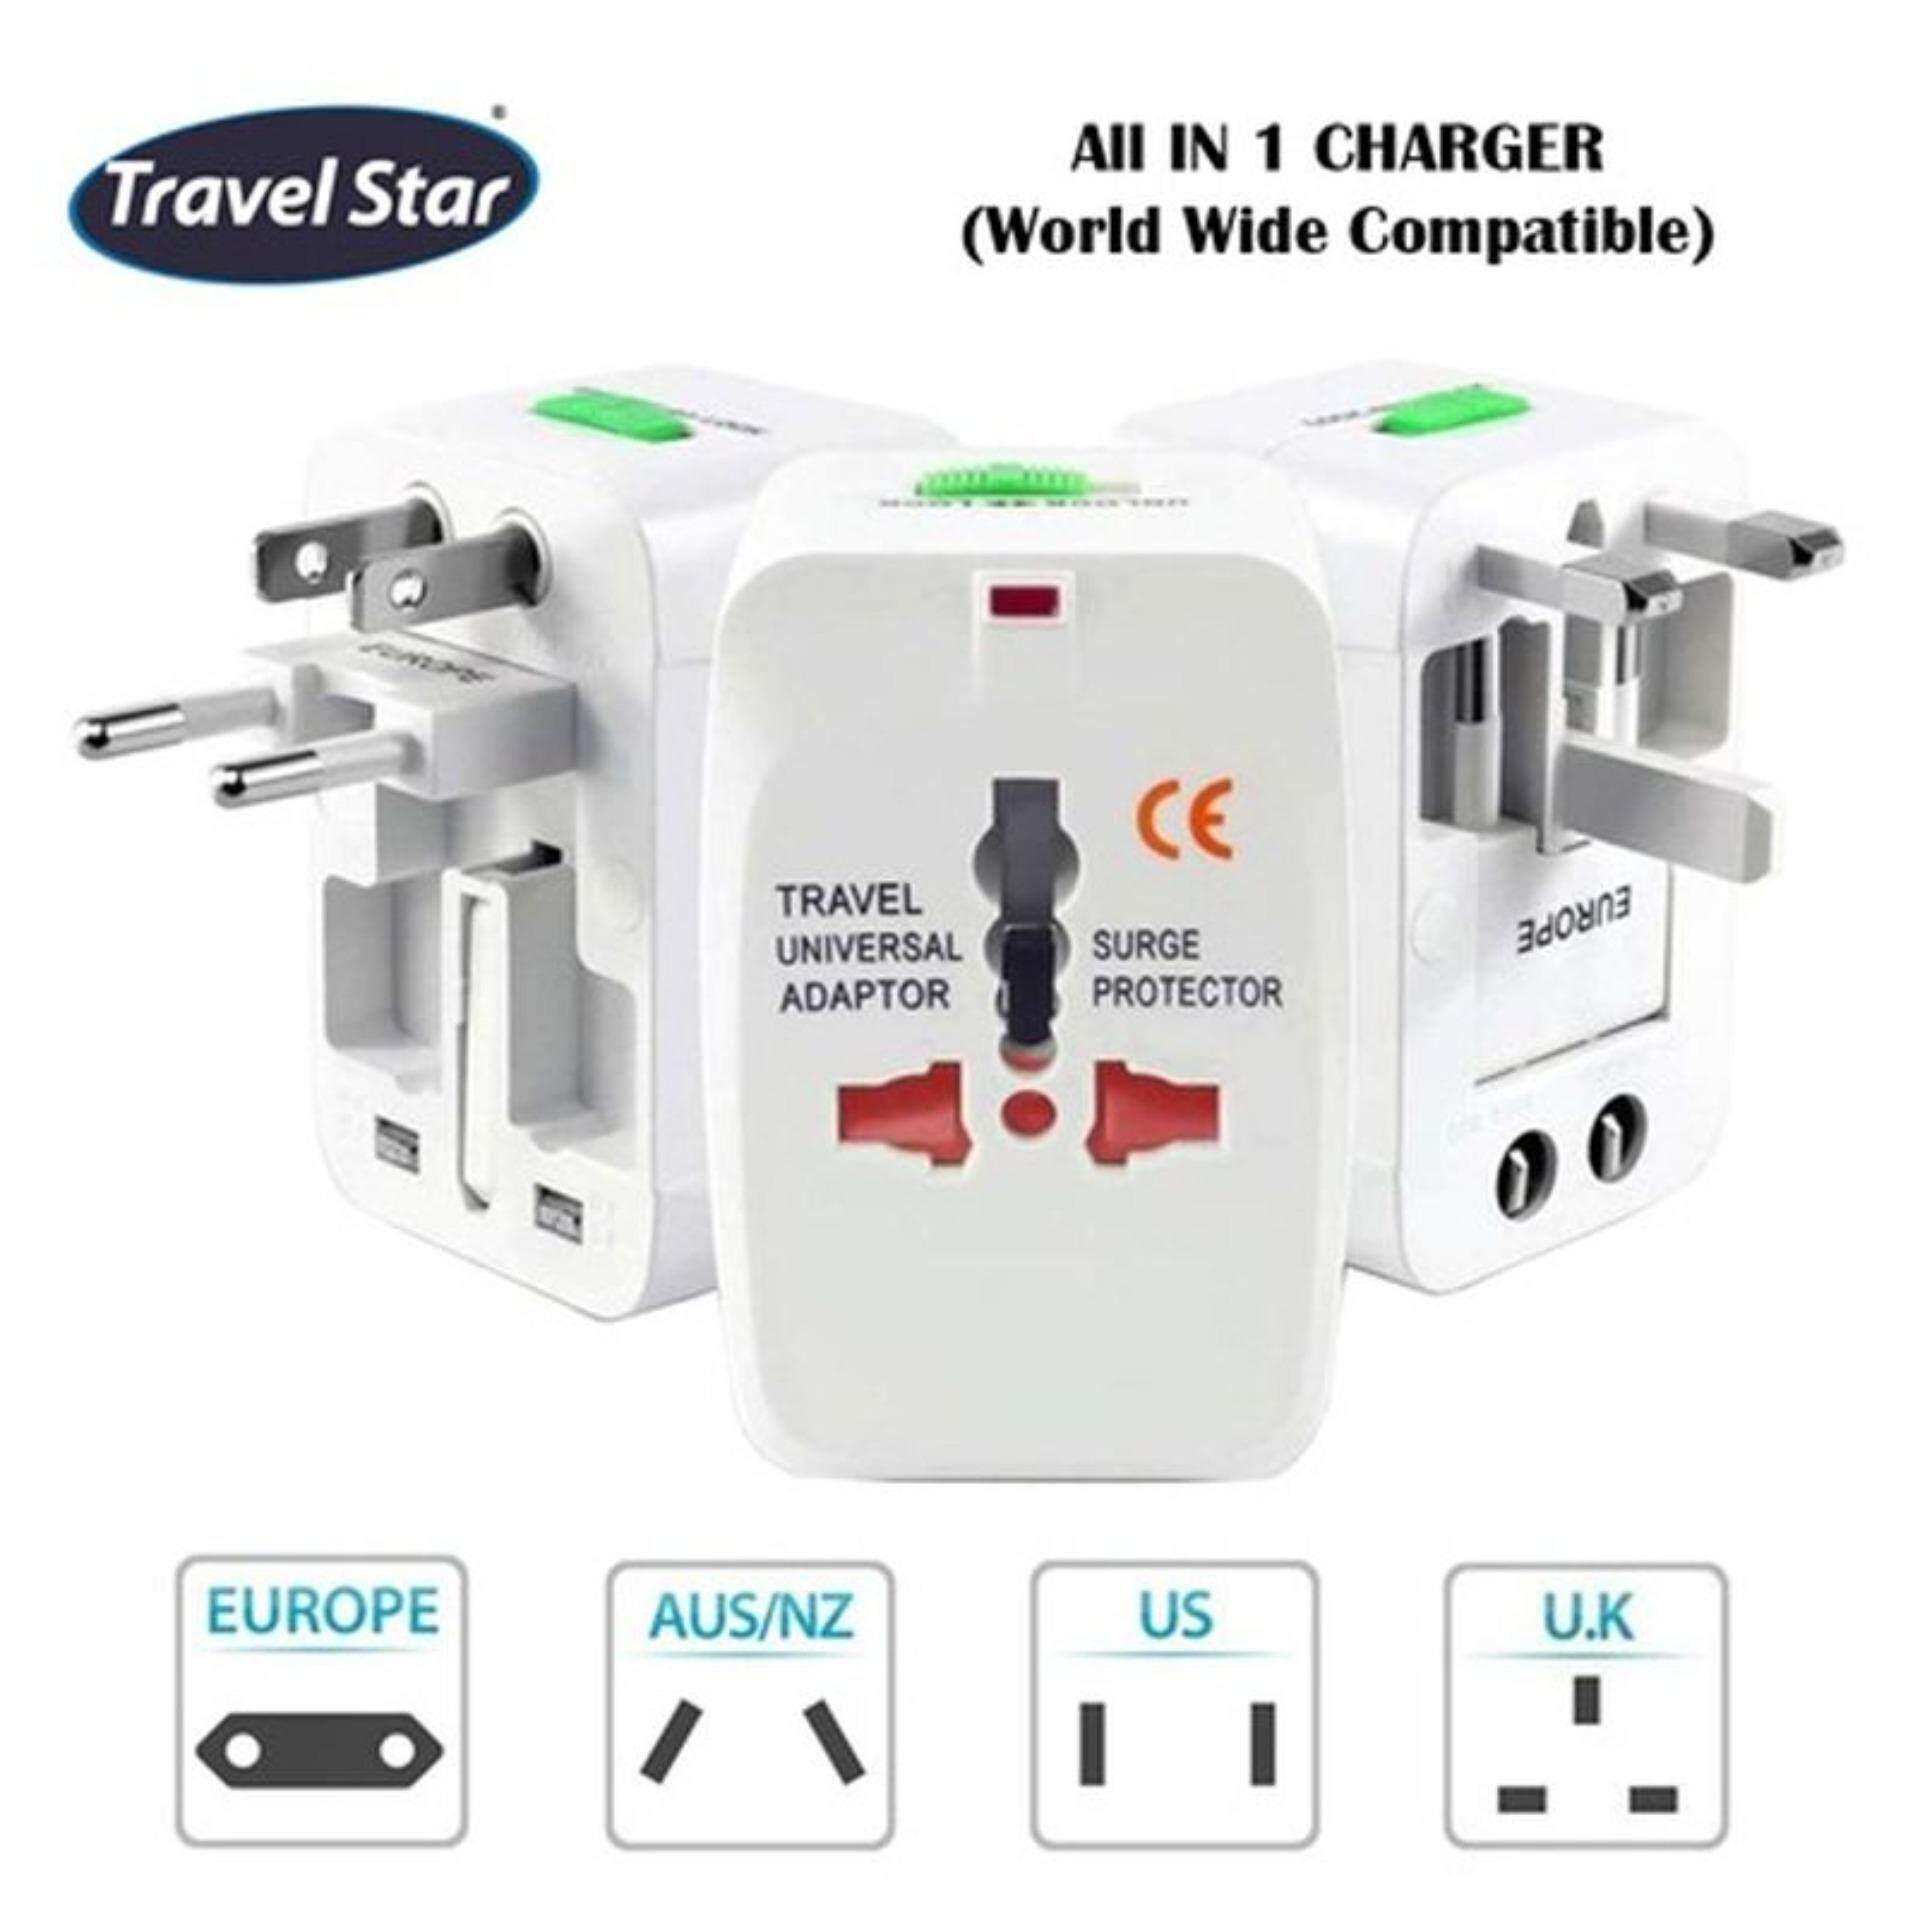 Travel Star International Travel Adapter Travel Adaptor ITA01 Home Plug Universal UK AUS US CN All in One Charger (World Wide Compatible)